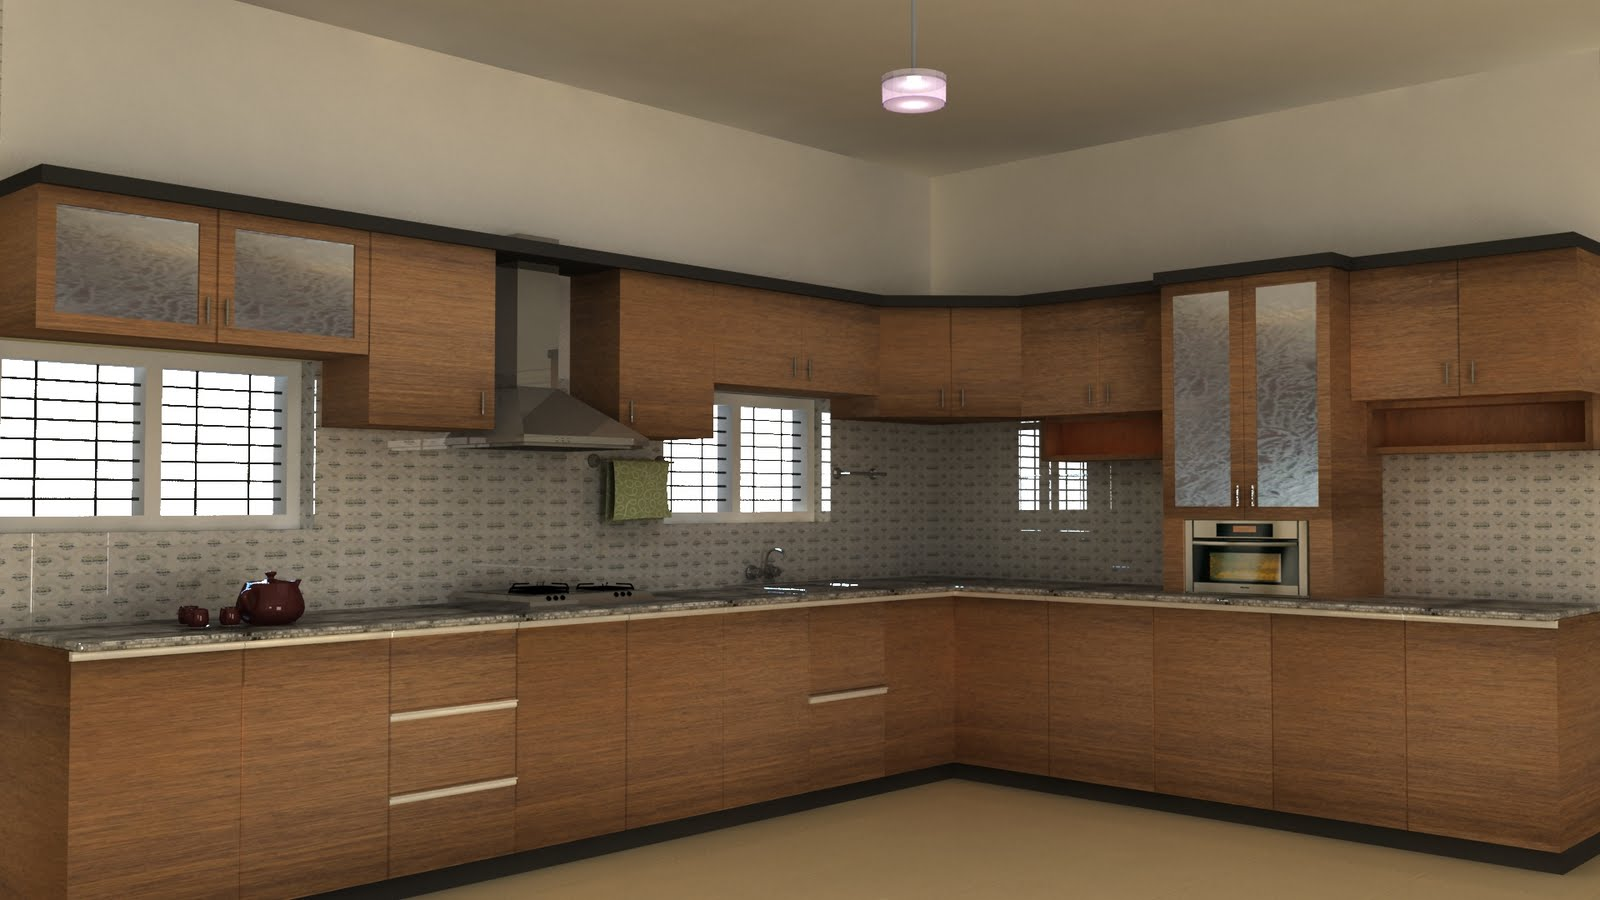 Living room design model living room interior designs for Modern kitchen designs in kerala